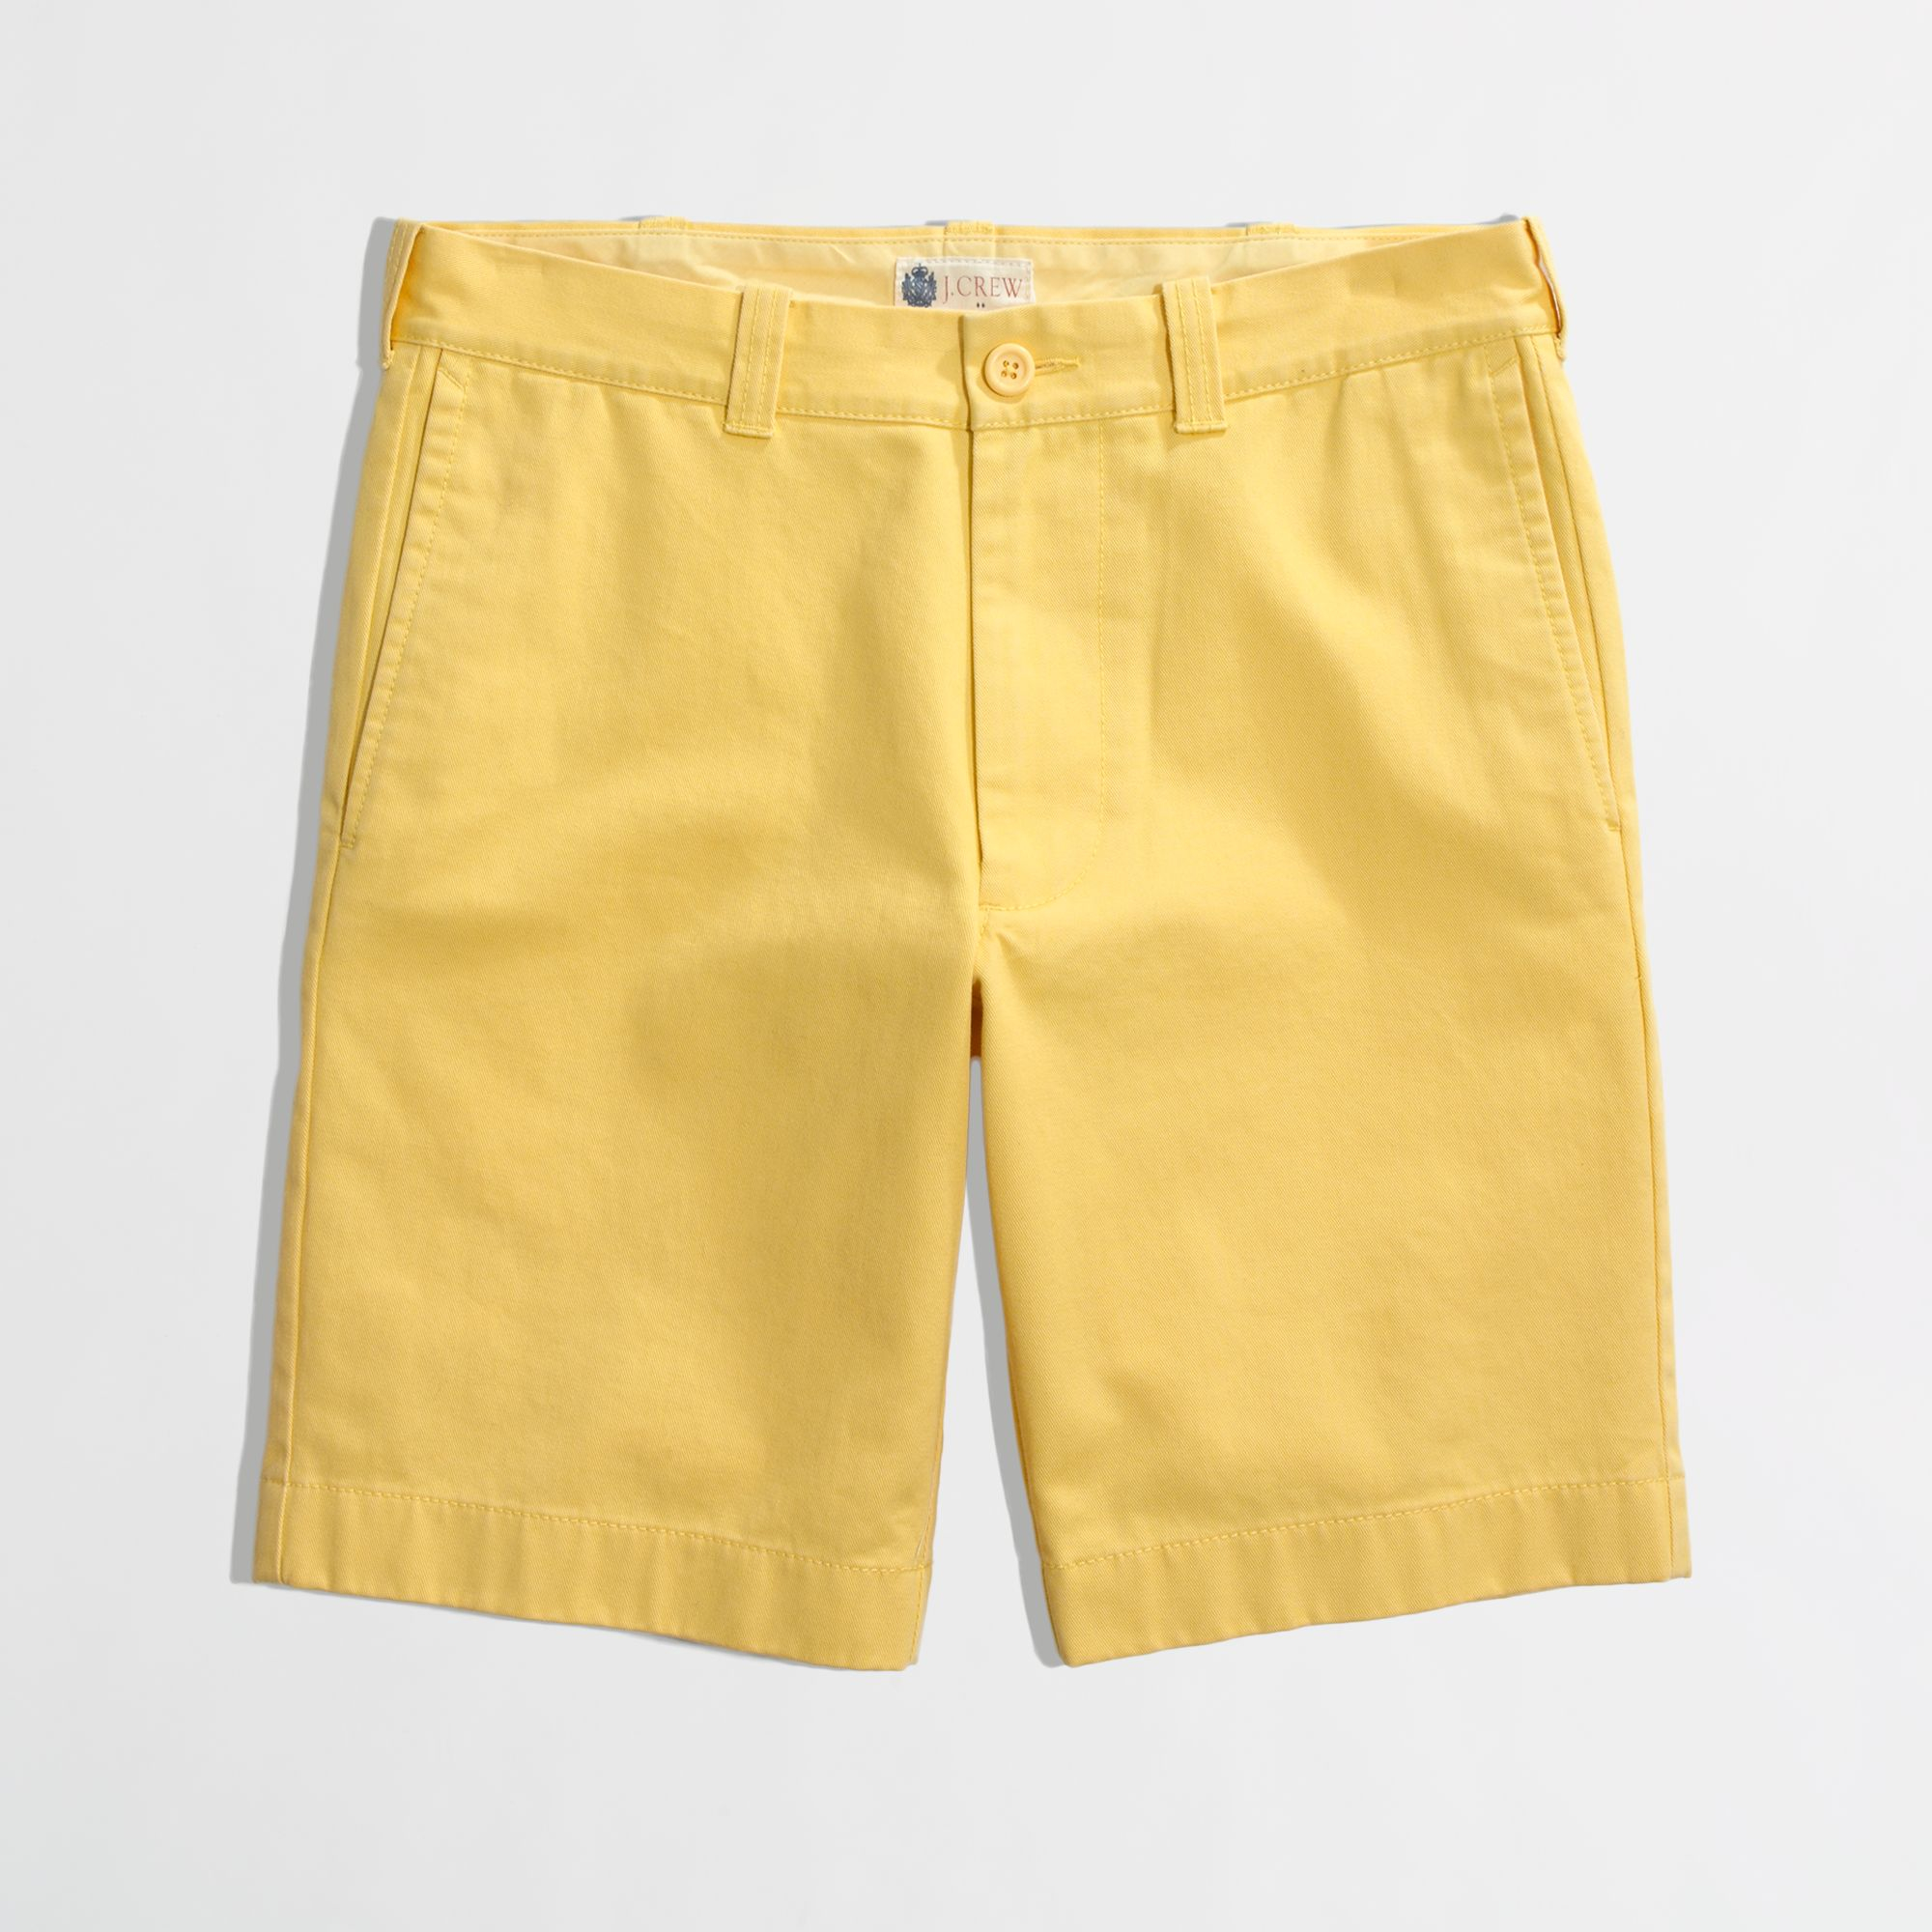 2a74e11cd26c0 Lyst - J.Crew Factory 9 Gramercy Short in Yellow for Men